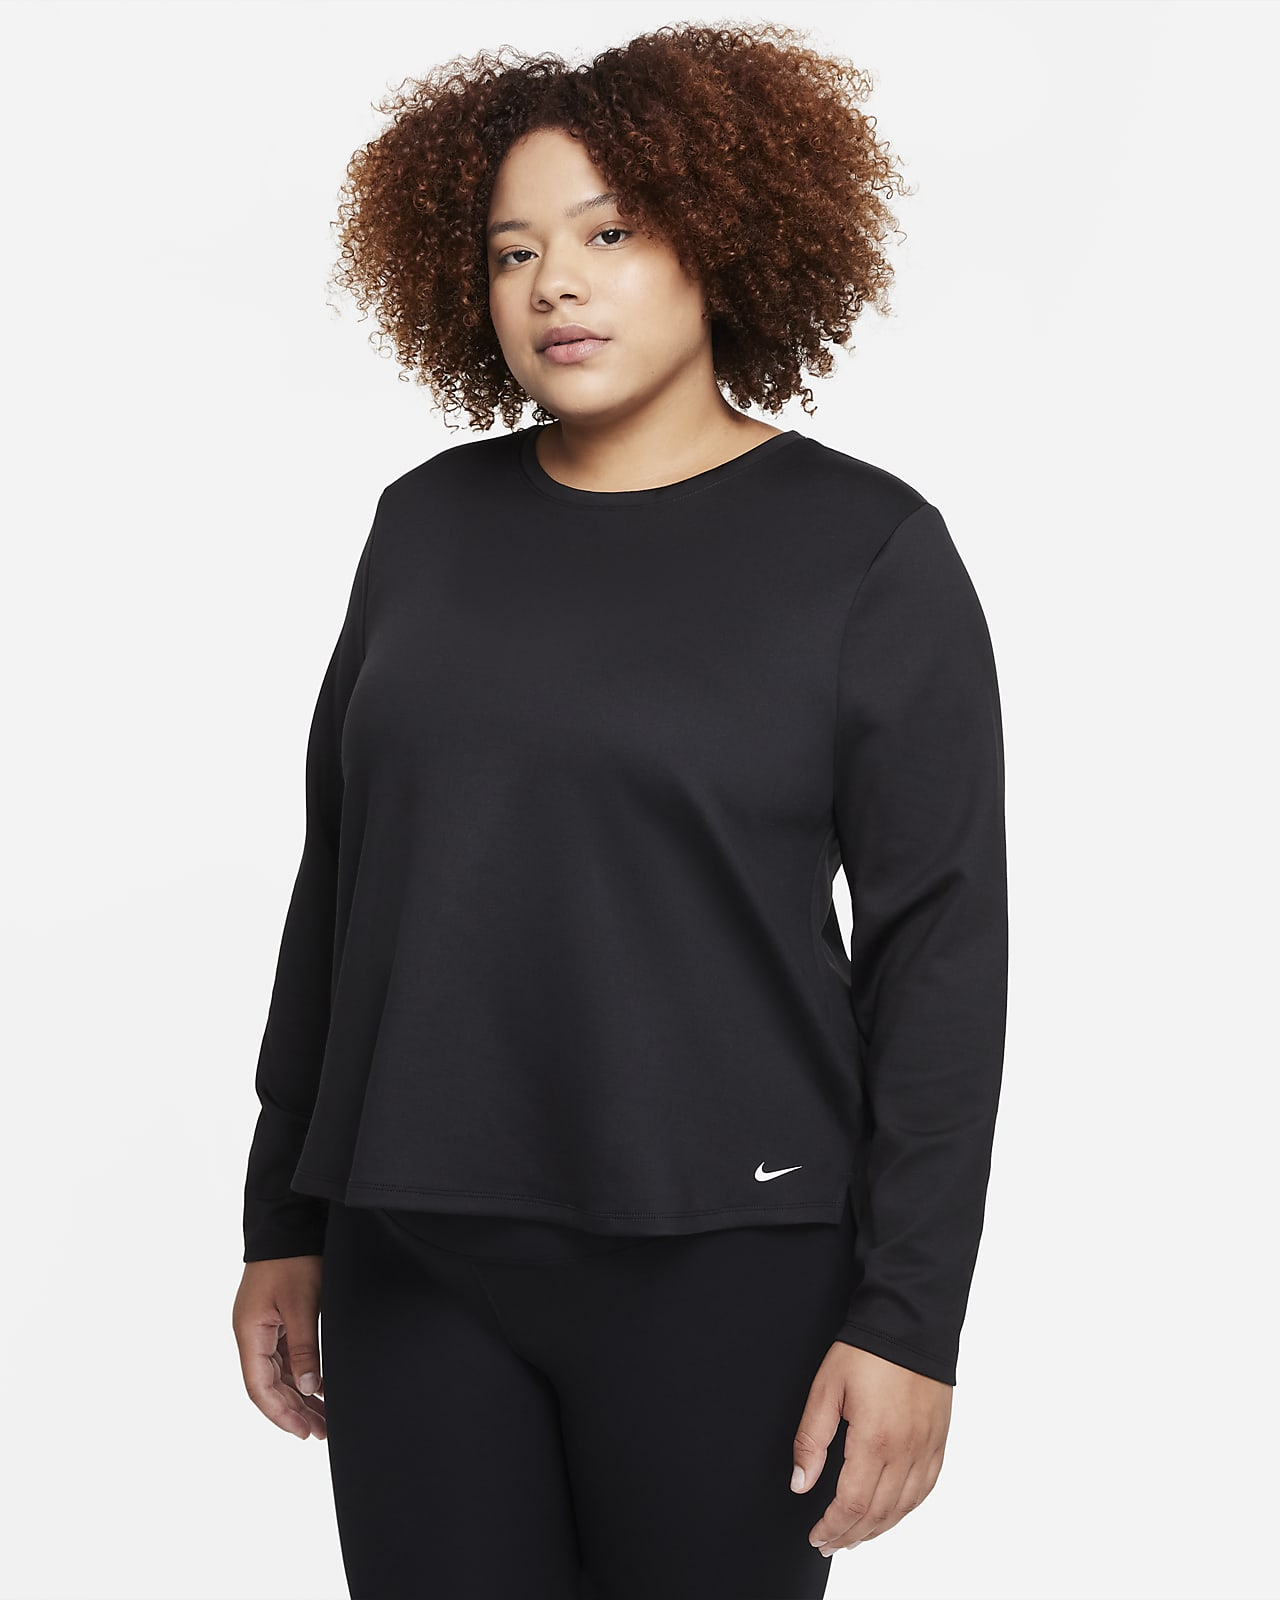 Nike Therma-FIT One Women's Standard Fit Long-Sleeve Top (Plus Size)